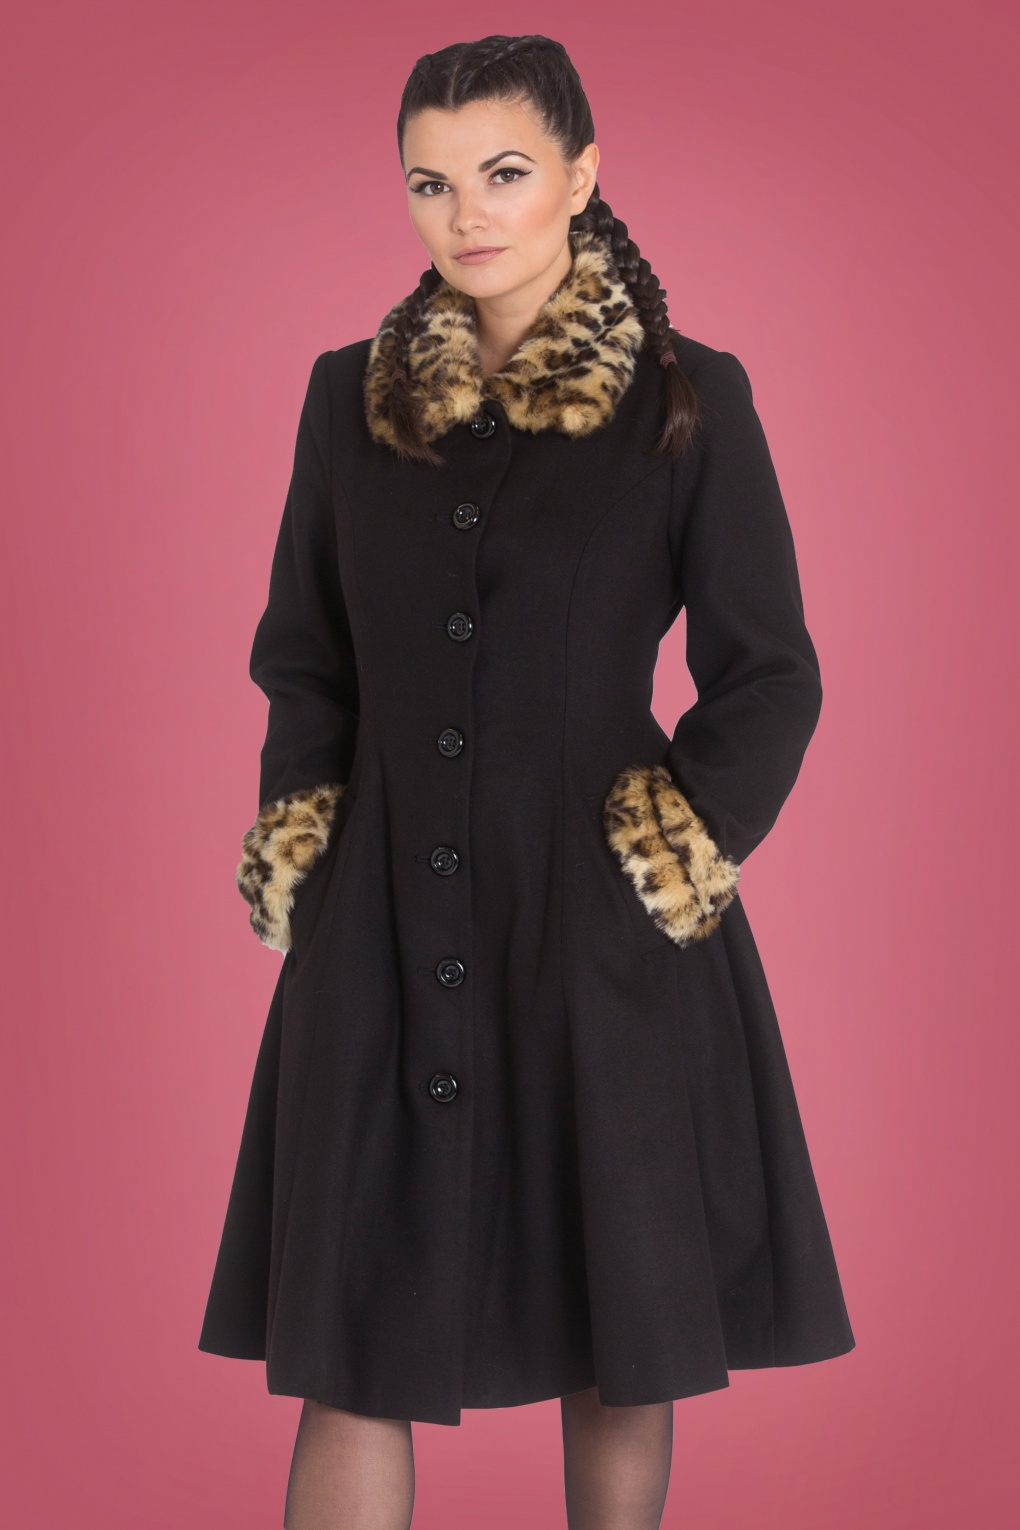 Vintage Coats & Jackets | Retro Coats and Jackets 50s Robinson Coat in Black £125.98 AT vintagedancer.com